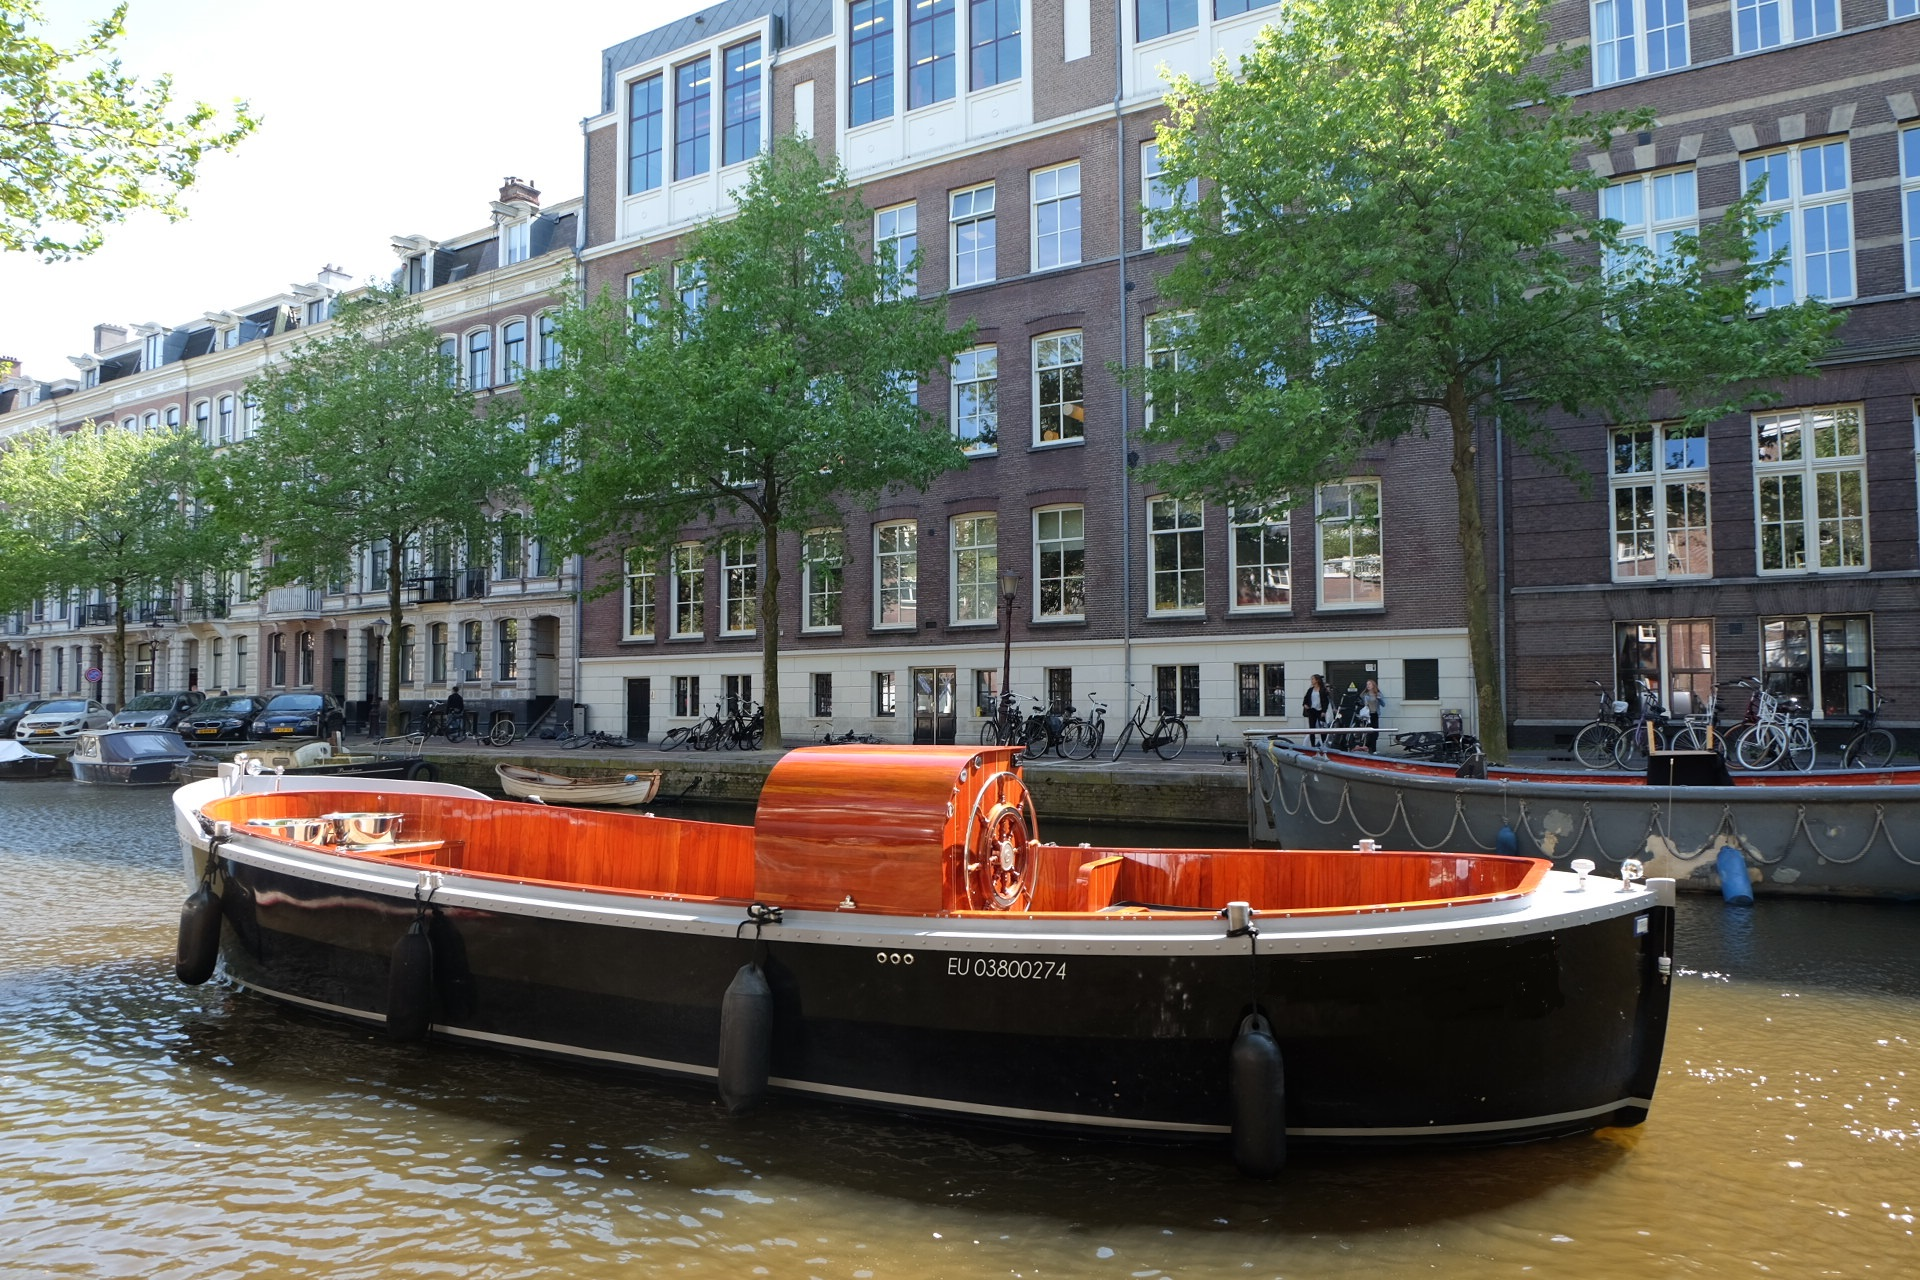 Rent A Boat Amsterdam Private Canal Cruise Amsterdam Vip Treatment For Any Budget